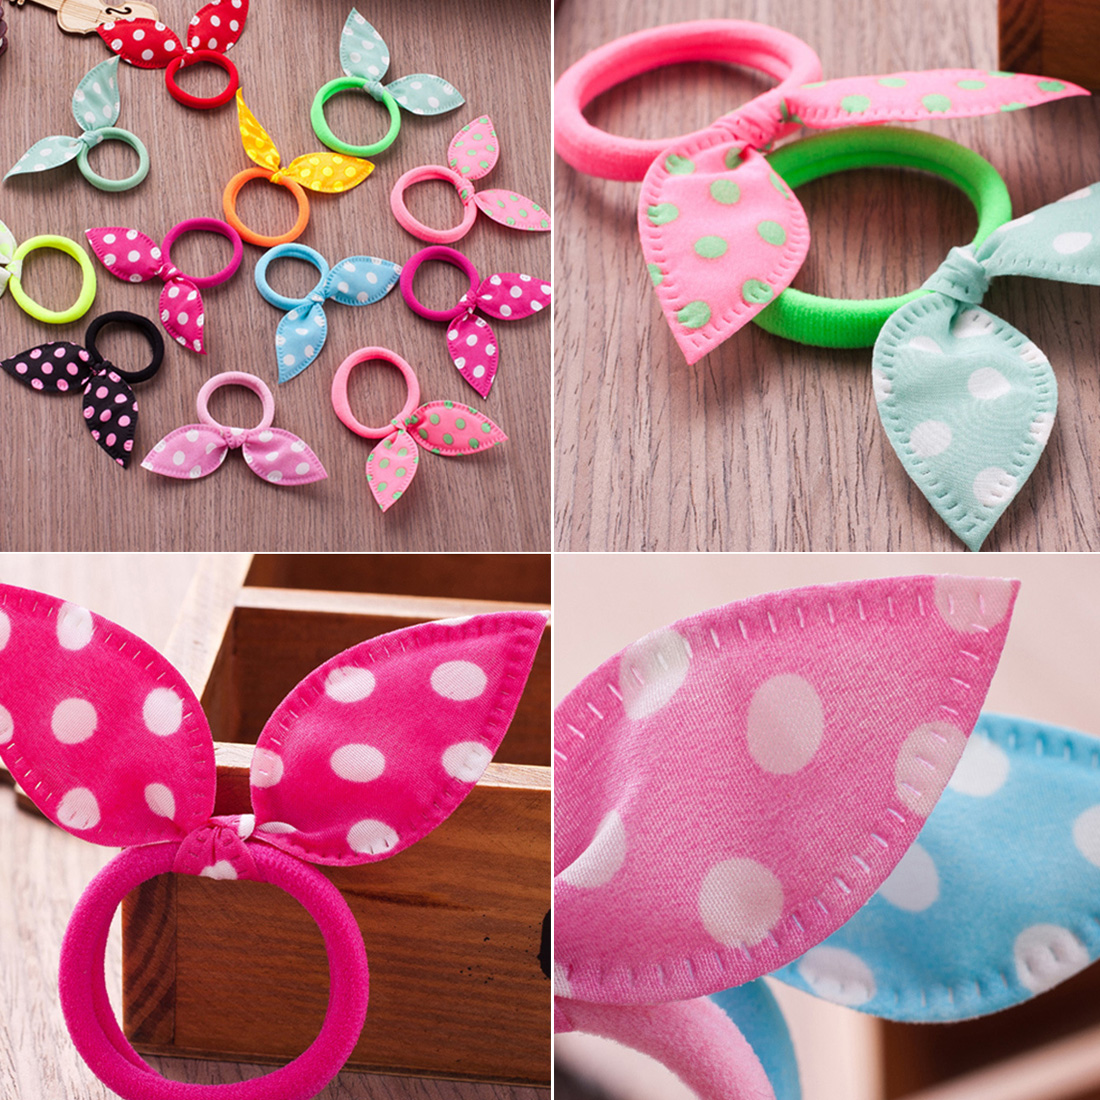 20pcs set Rabbit ears Hair band ren Hair Accessories Scrunchies Elastic Hair Band for girl rubber band in Hair Accessories from Mother Kids